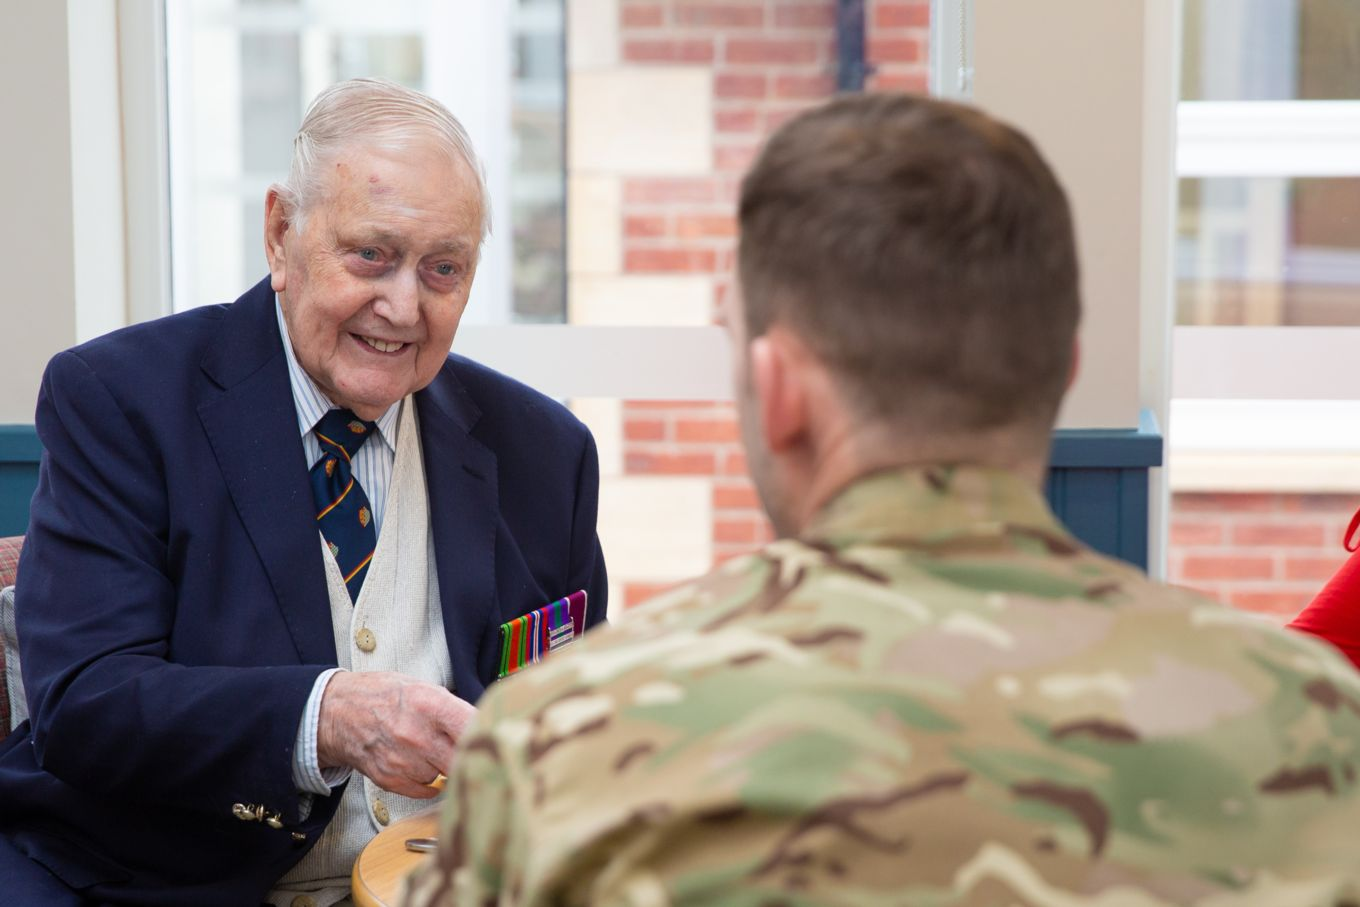 Mr James Fay in conversation with an airman from RAF Wittering